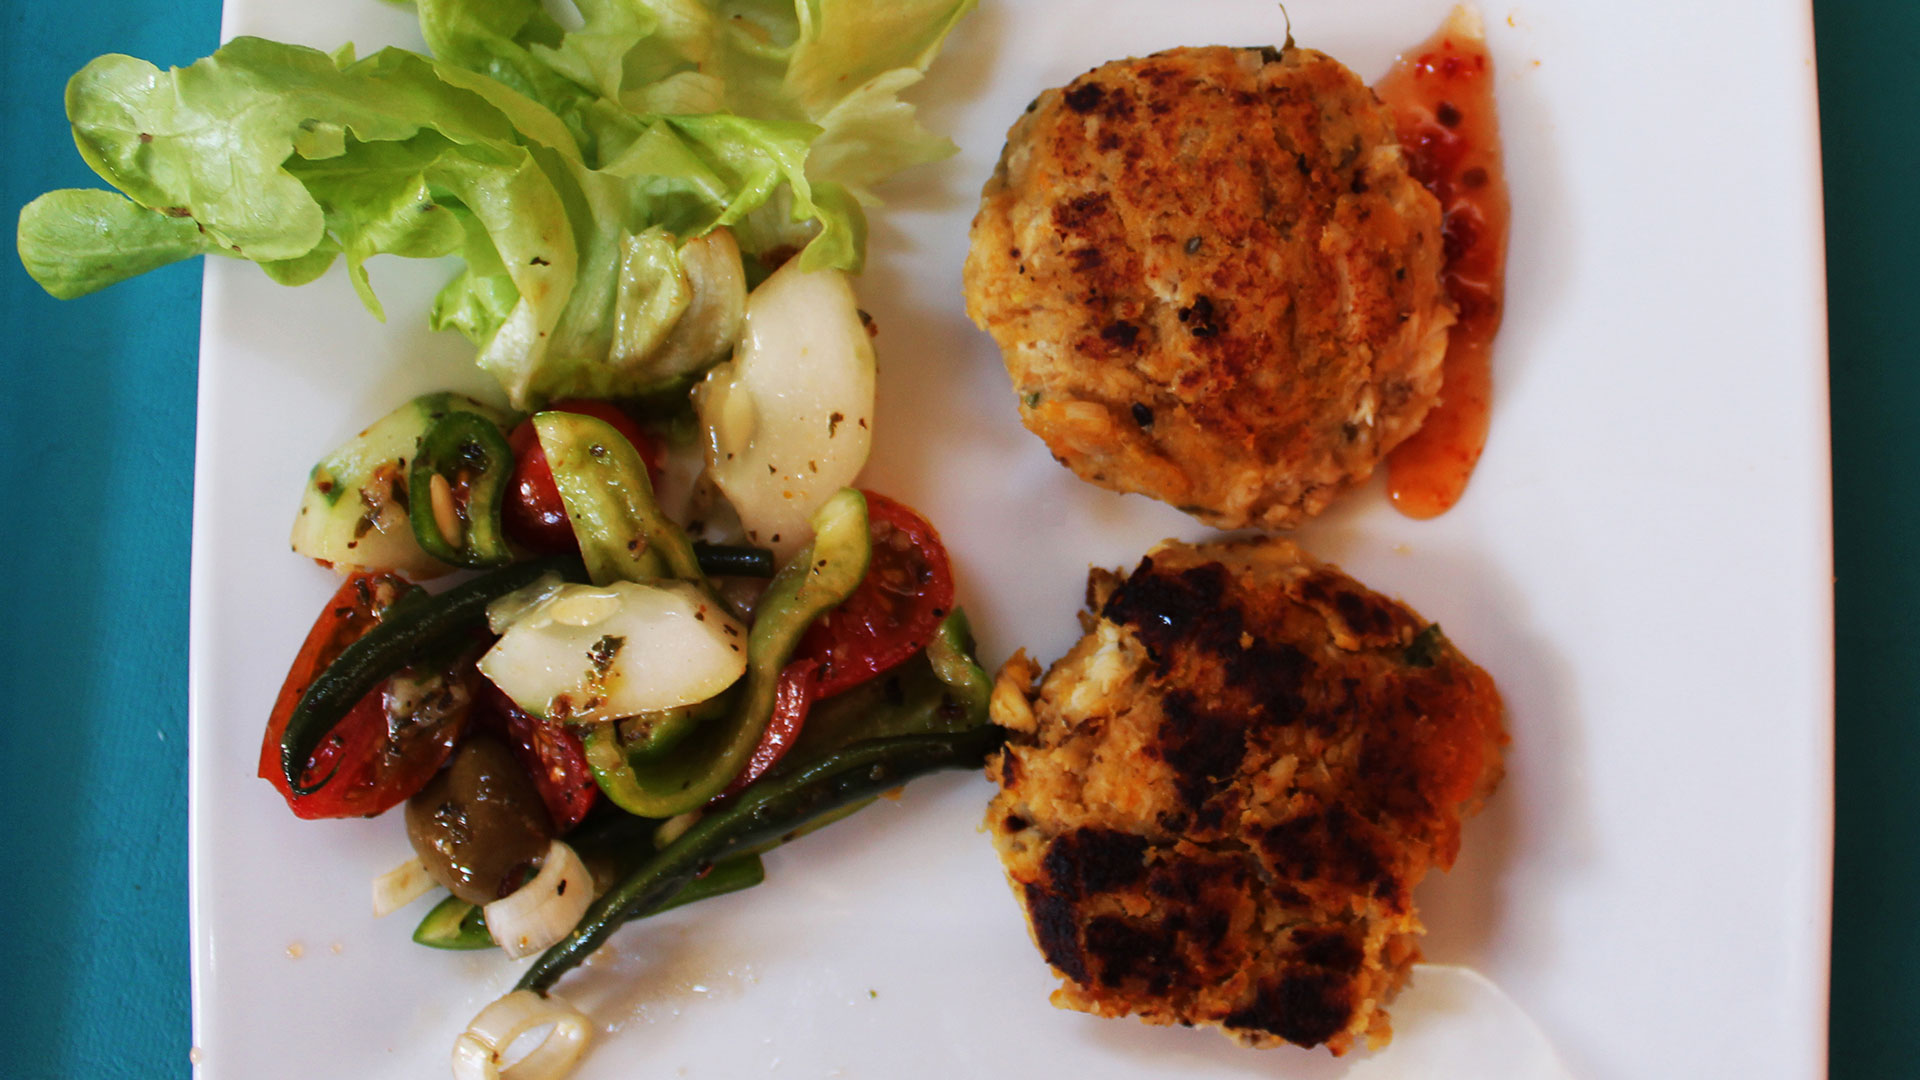 Amanda's Tuna Cakes Described in the Recipe Below